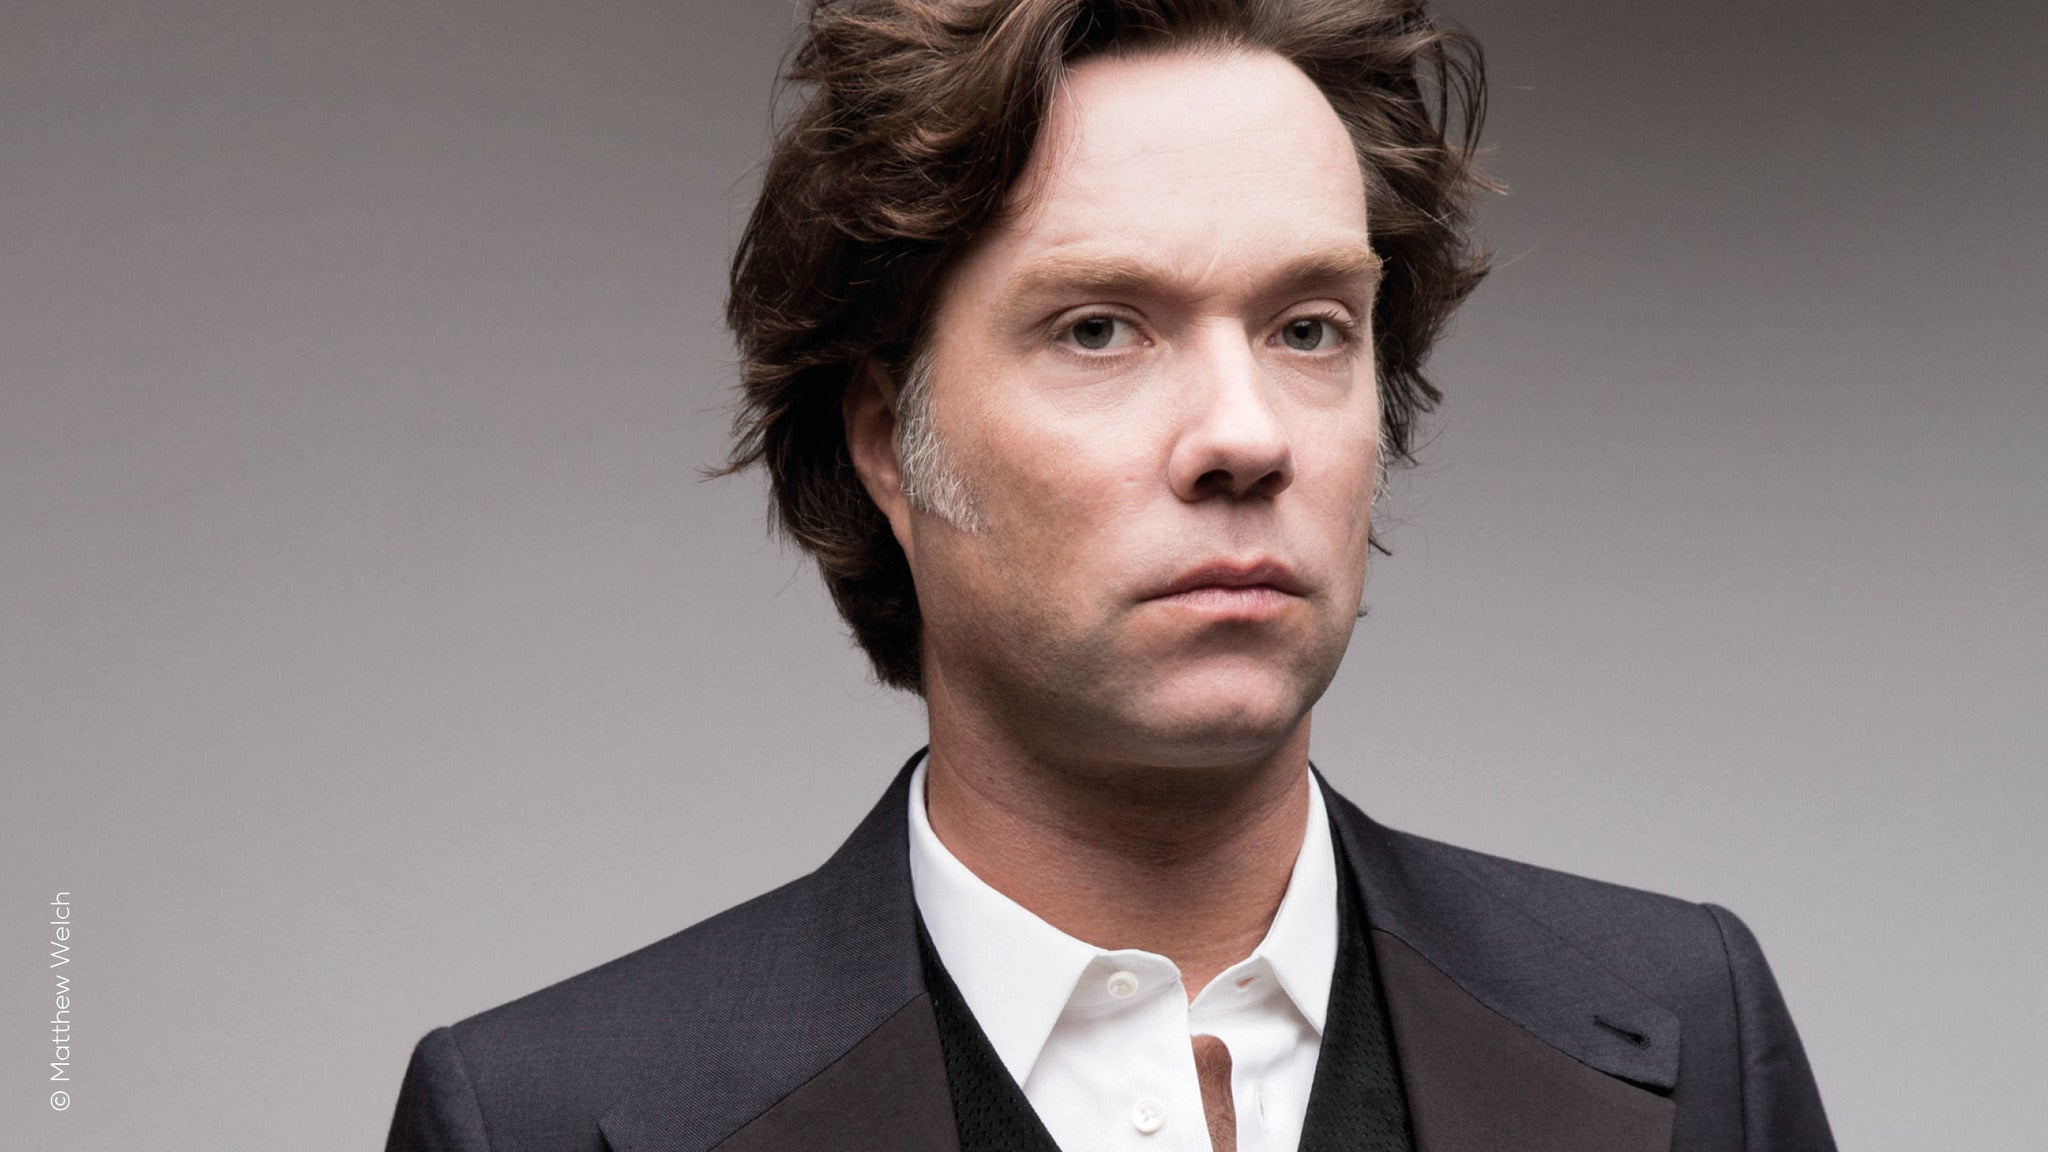 Rufus Wainwright at The Masonic